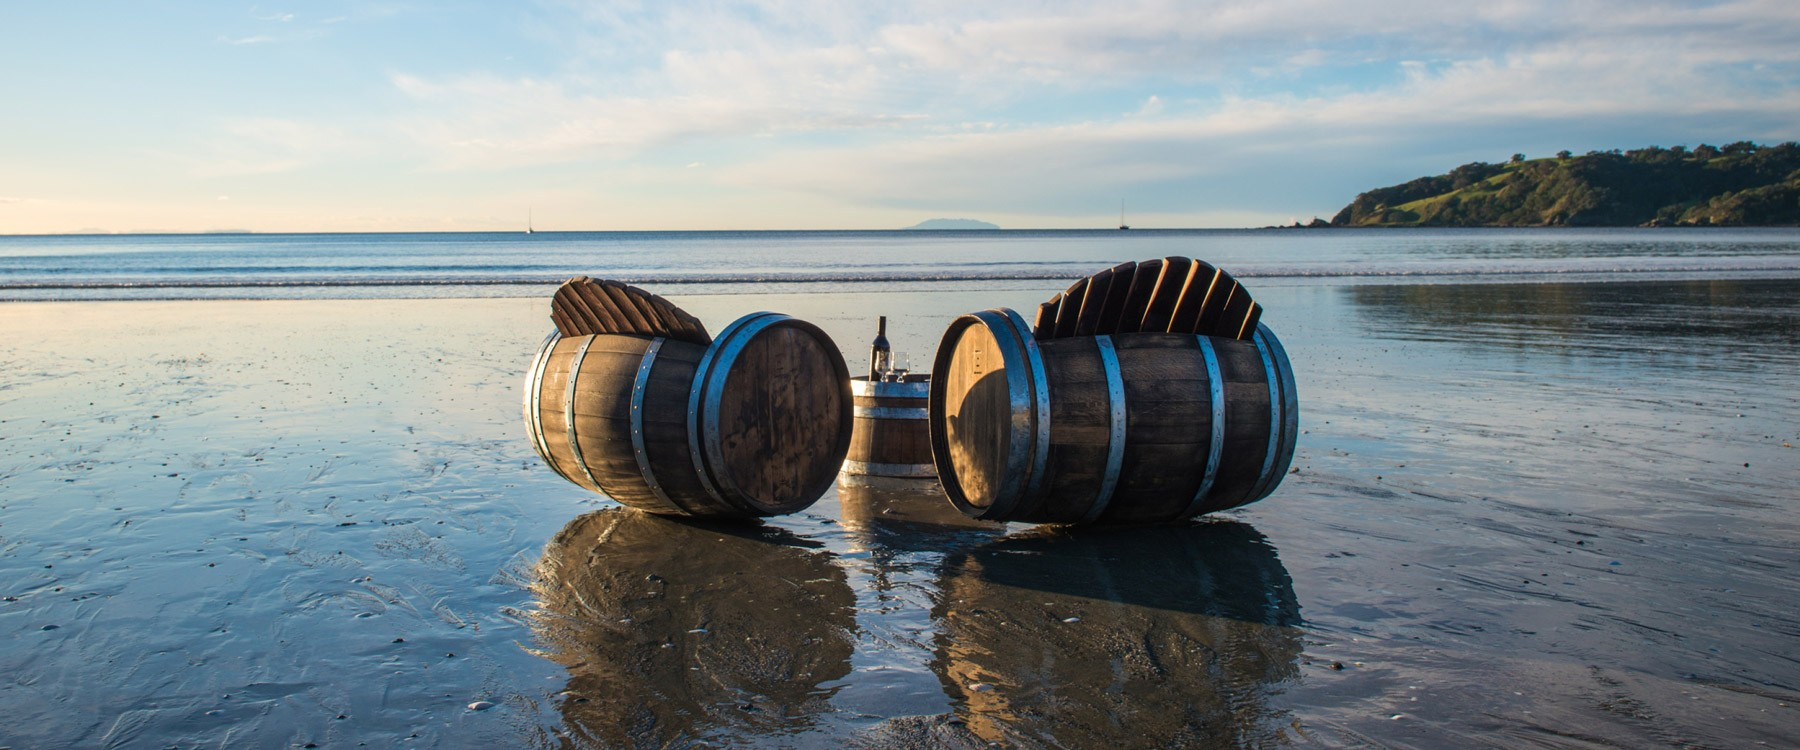 Wine-Barrel-Furniture-The-Lost-Barrel-by-Aaron-Carpenter-photogarphy-by-Peter-Rees-3